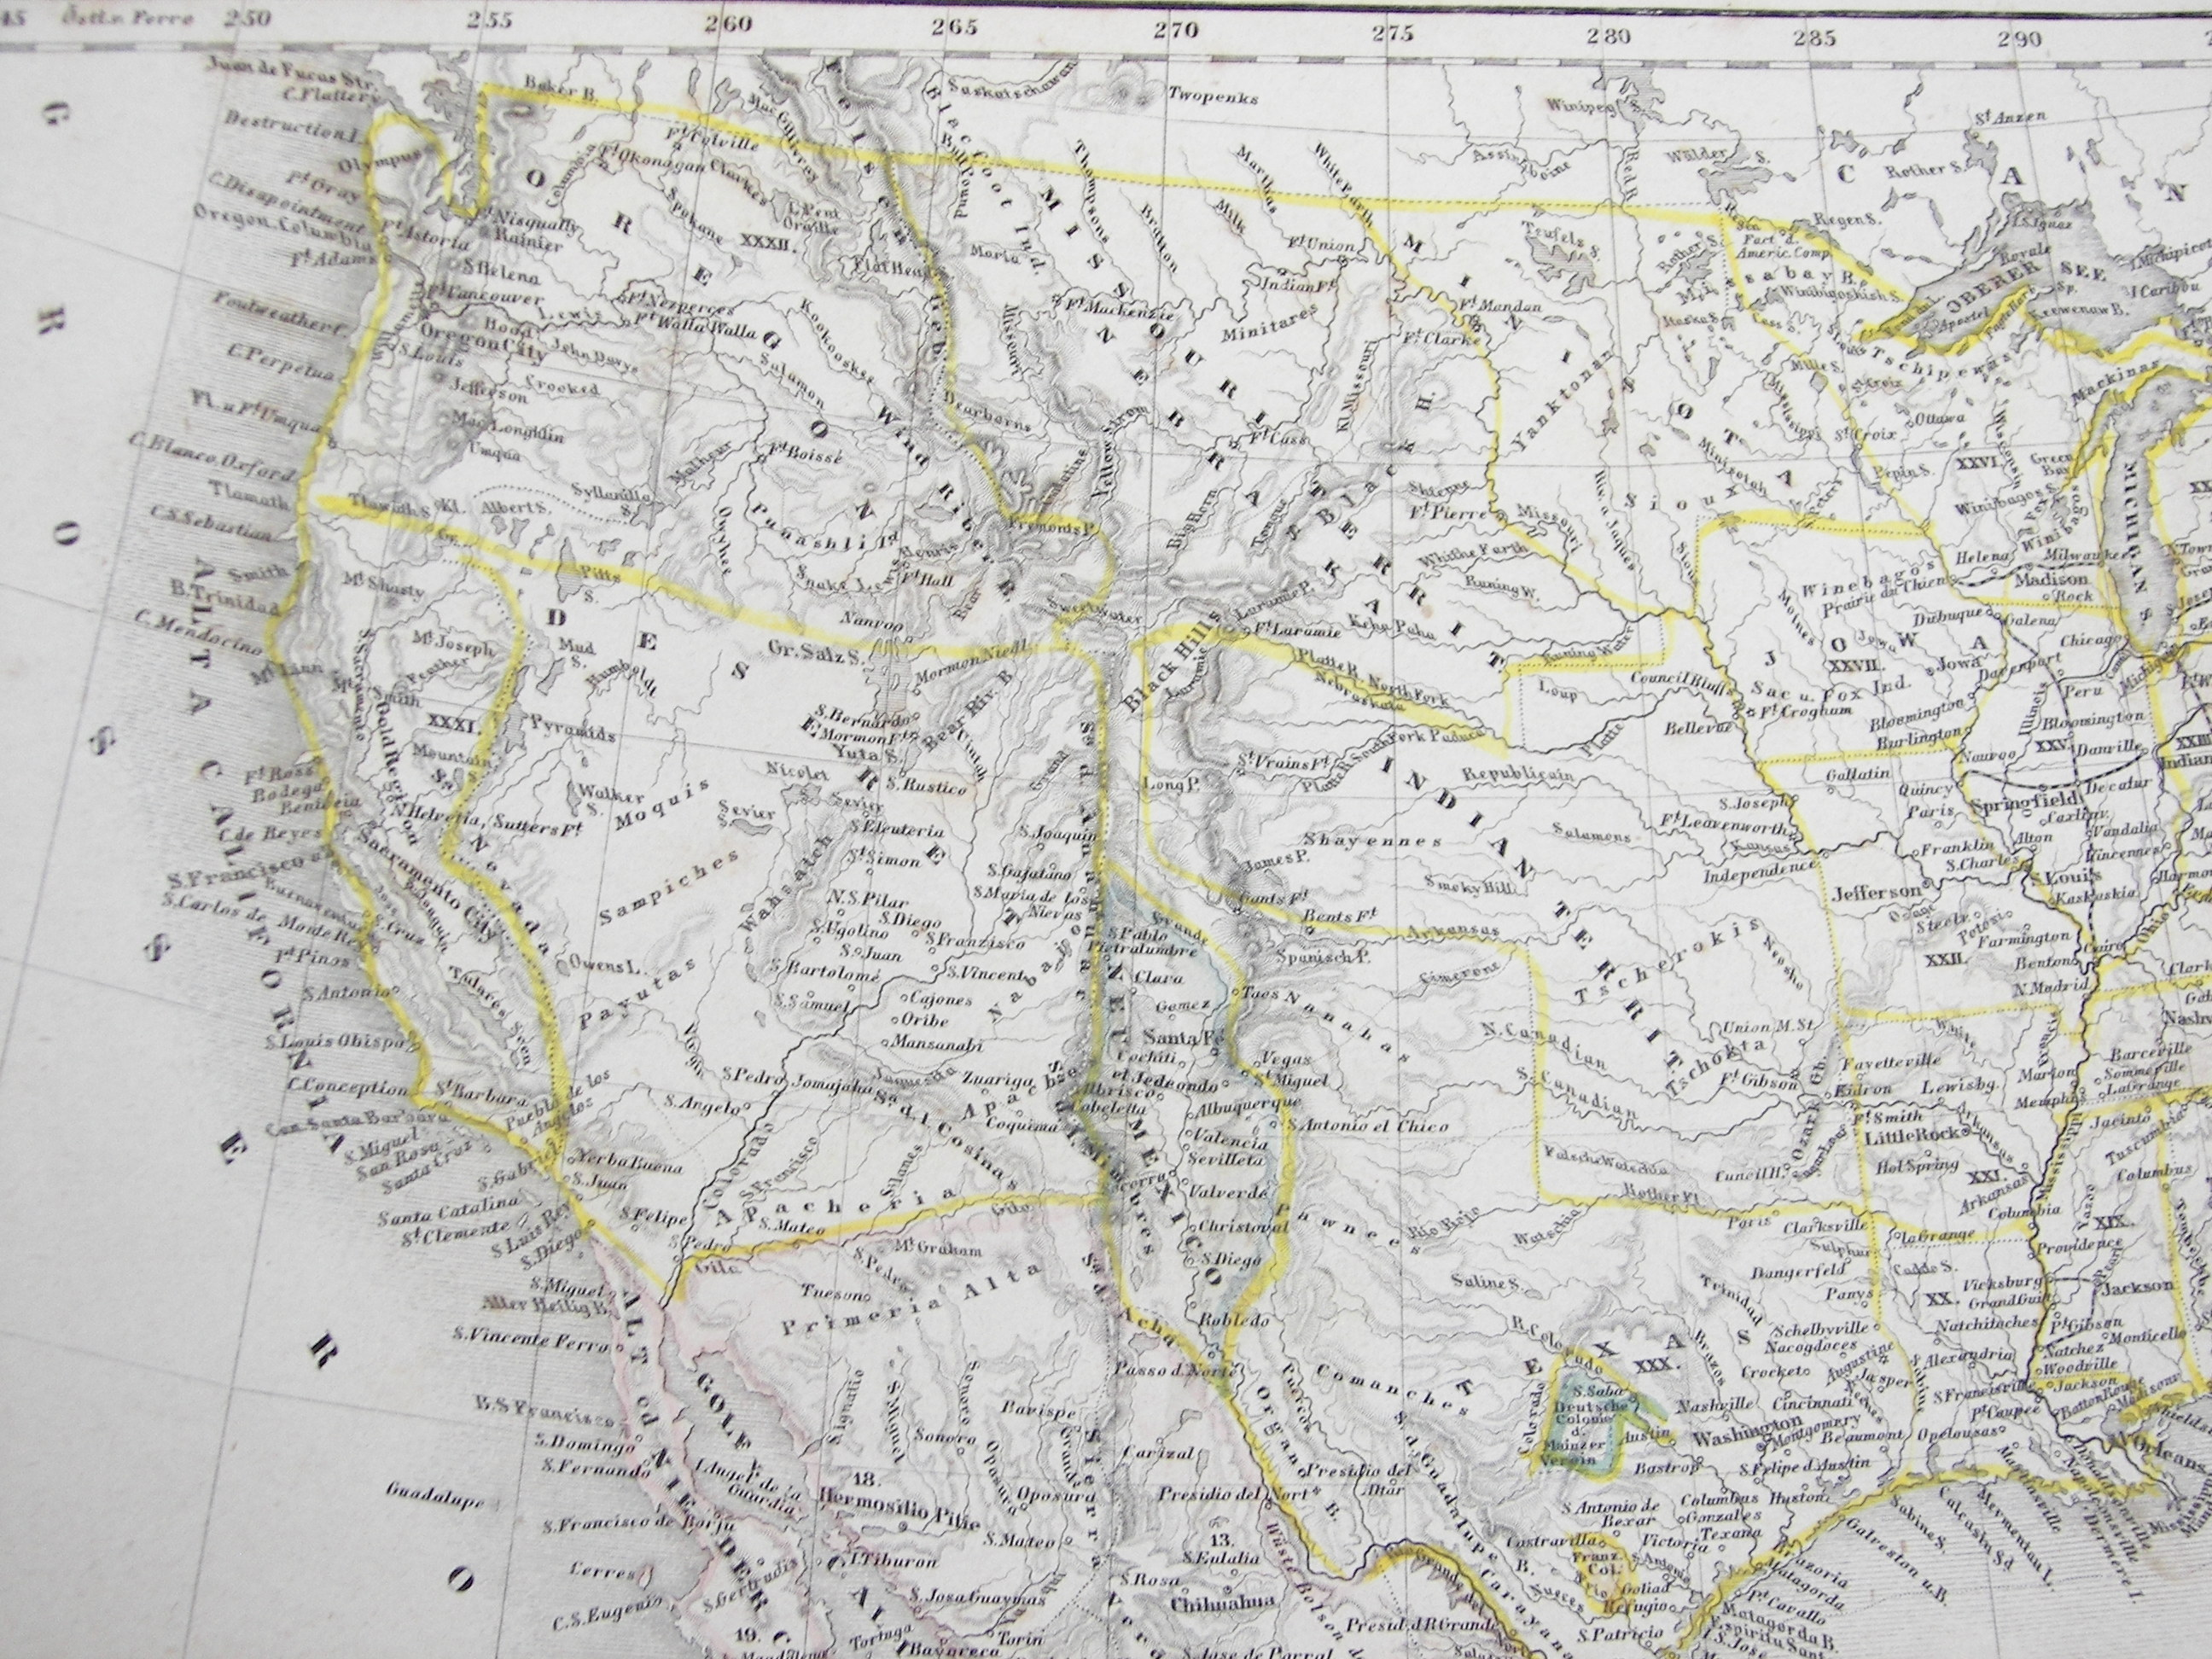 Washington County Maps And Charts - Road-map-of-the-us